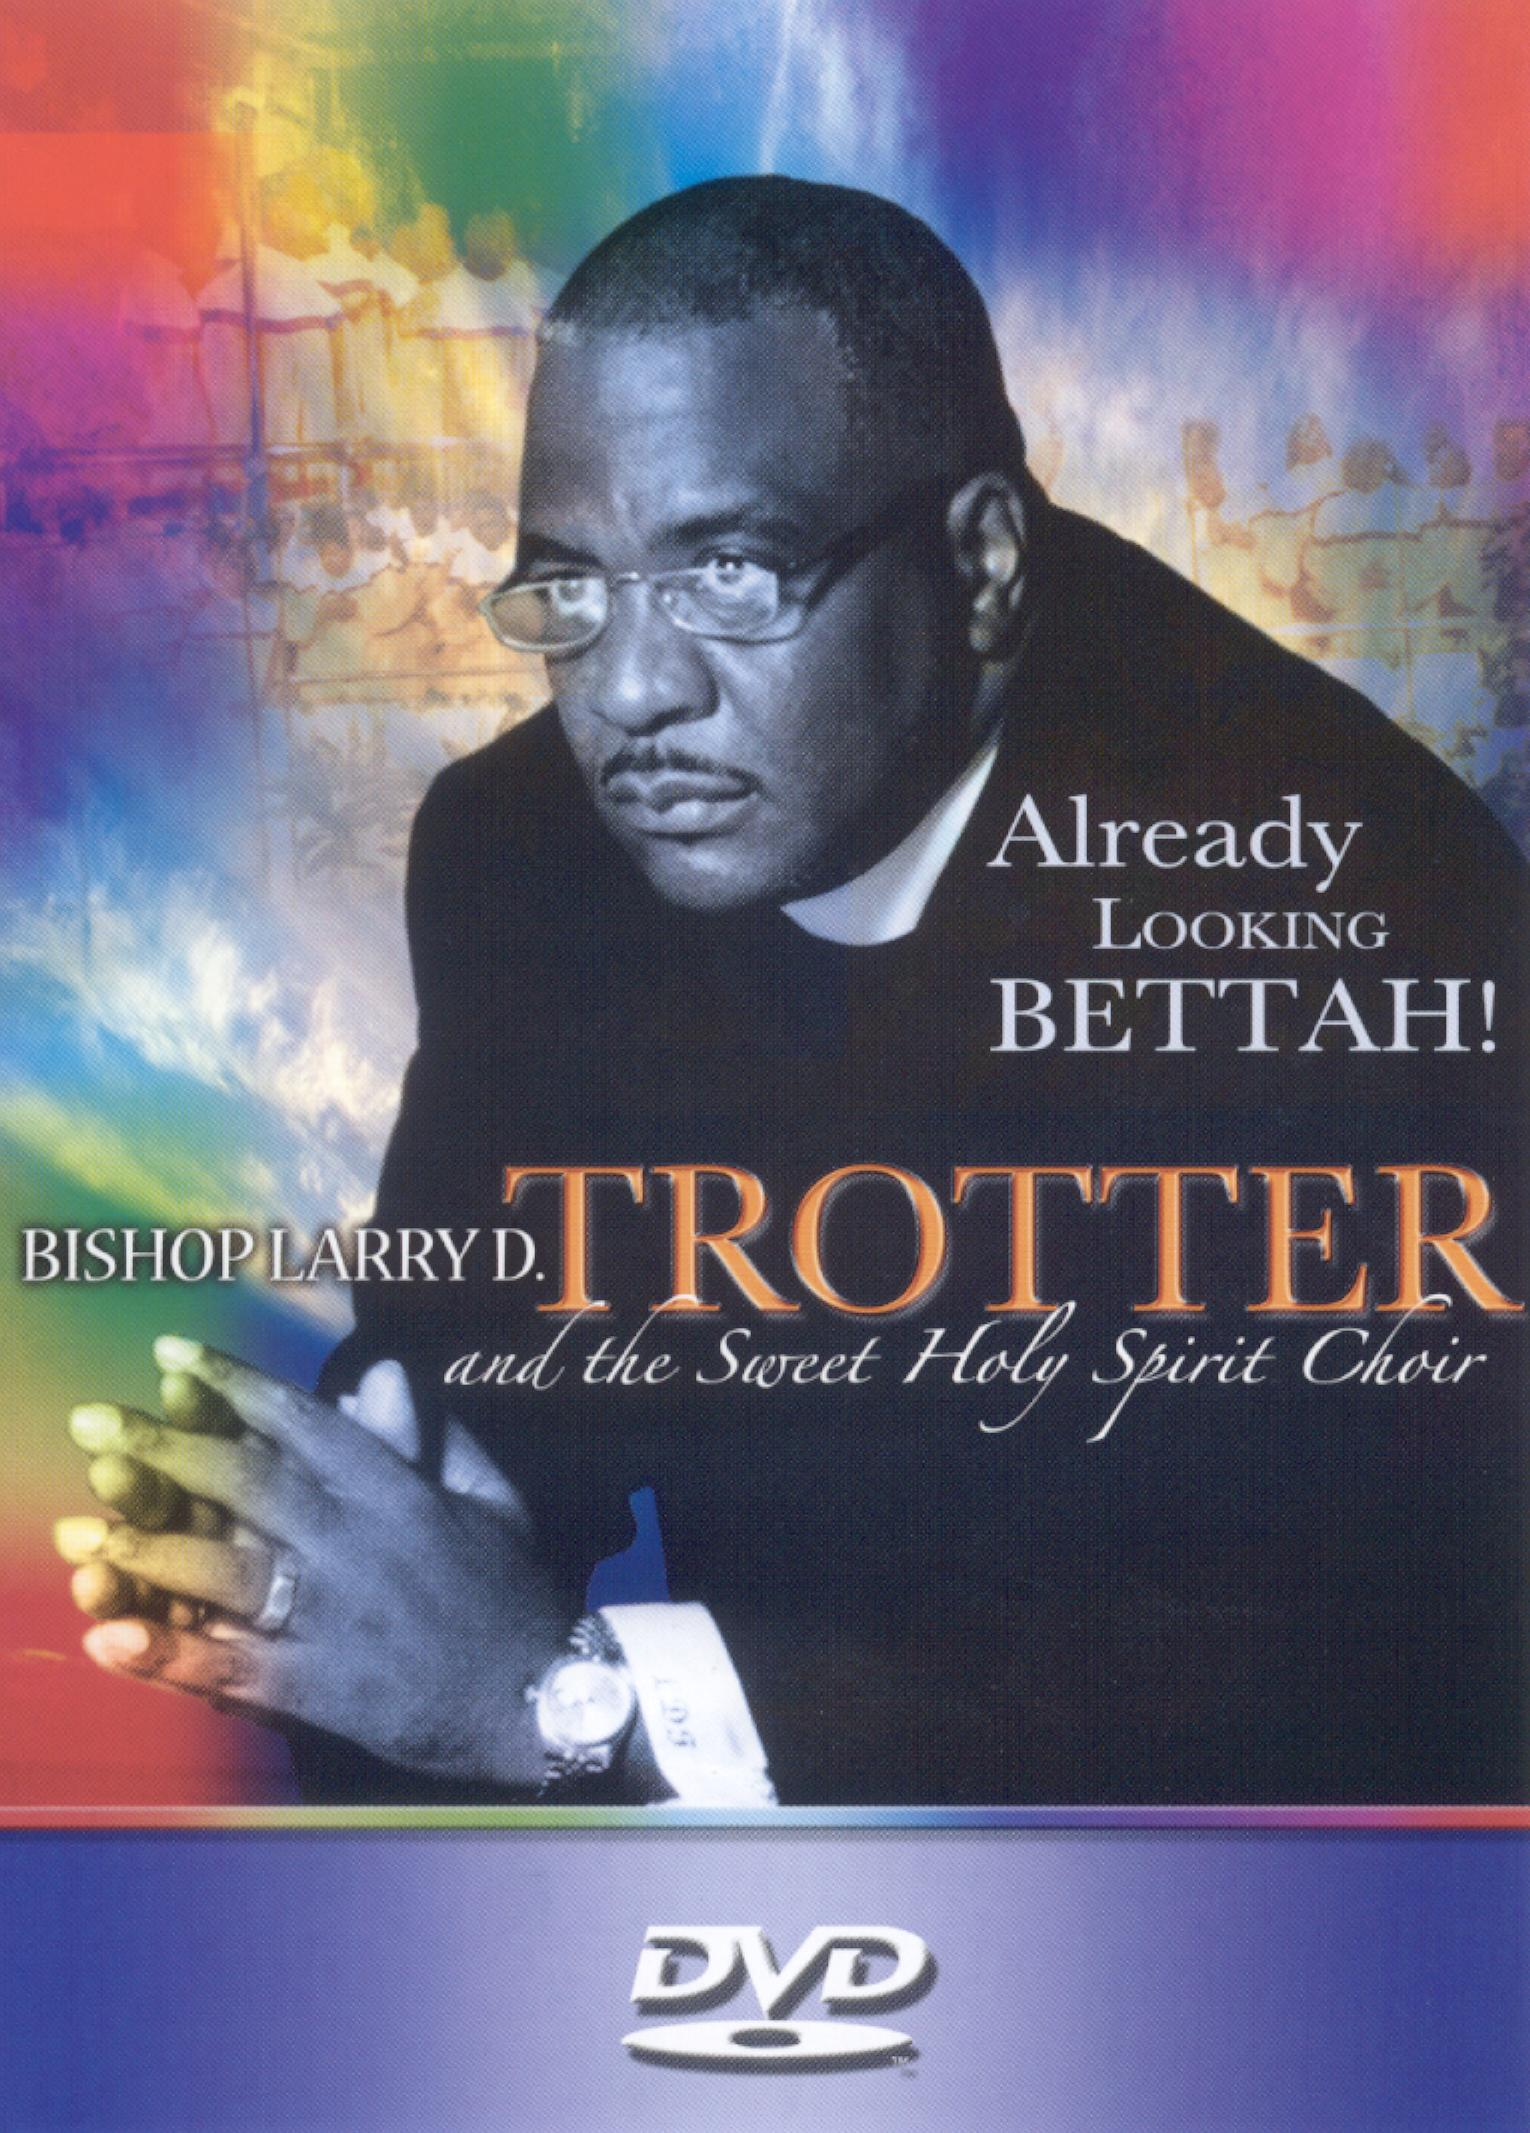 Bishop Larry D. Trotter & the Sweet Holy Spirit: Already Looking Bettah